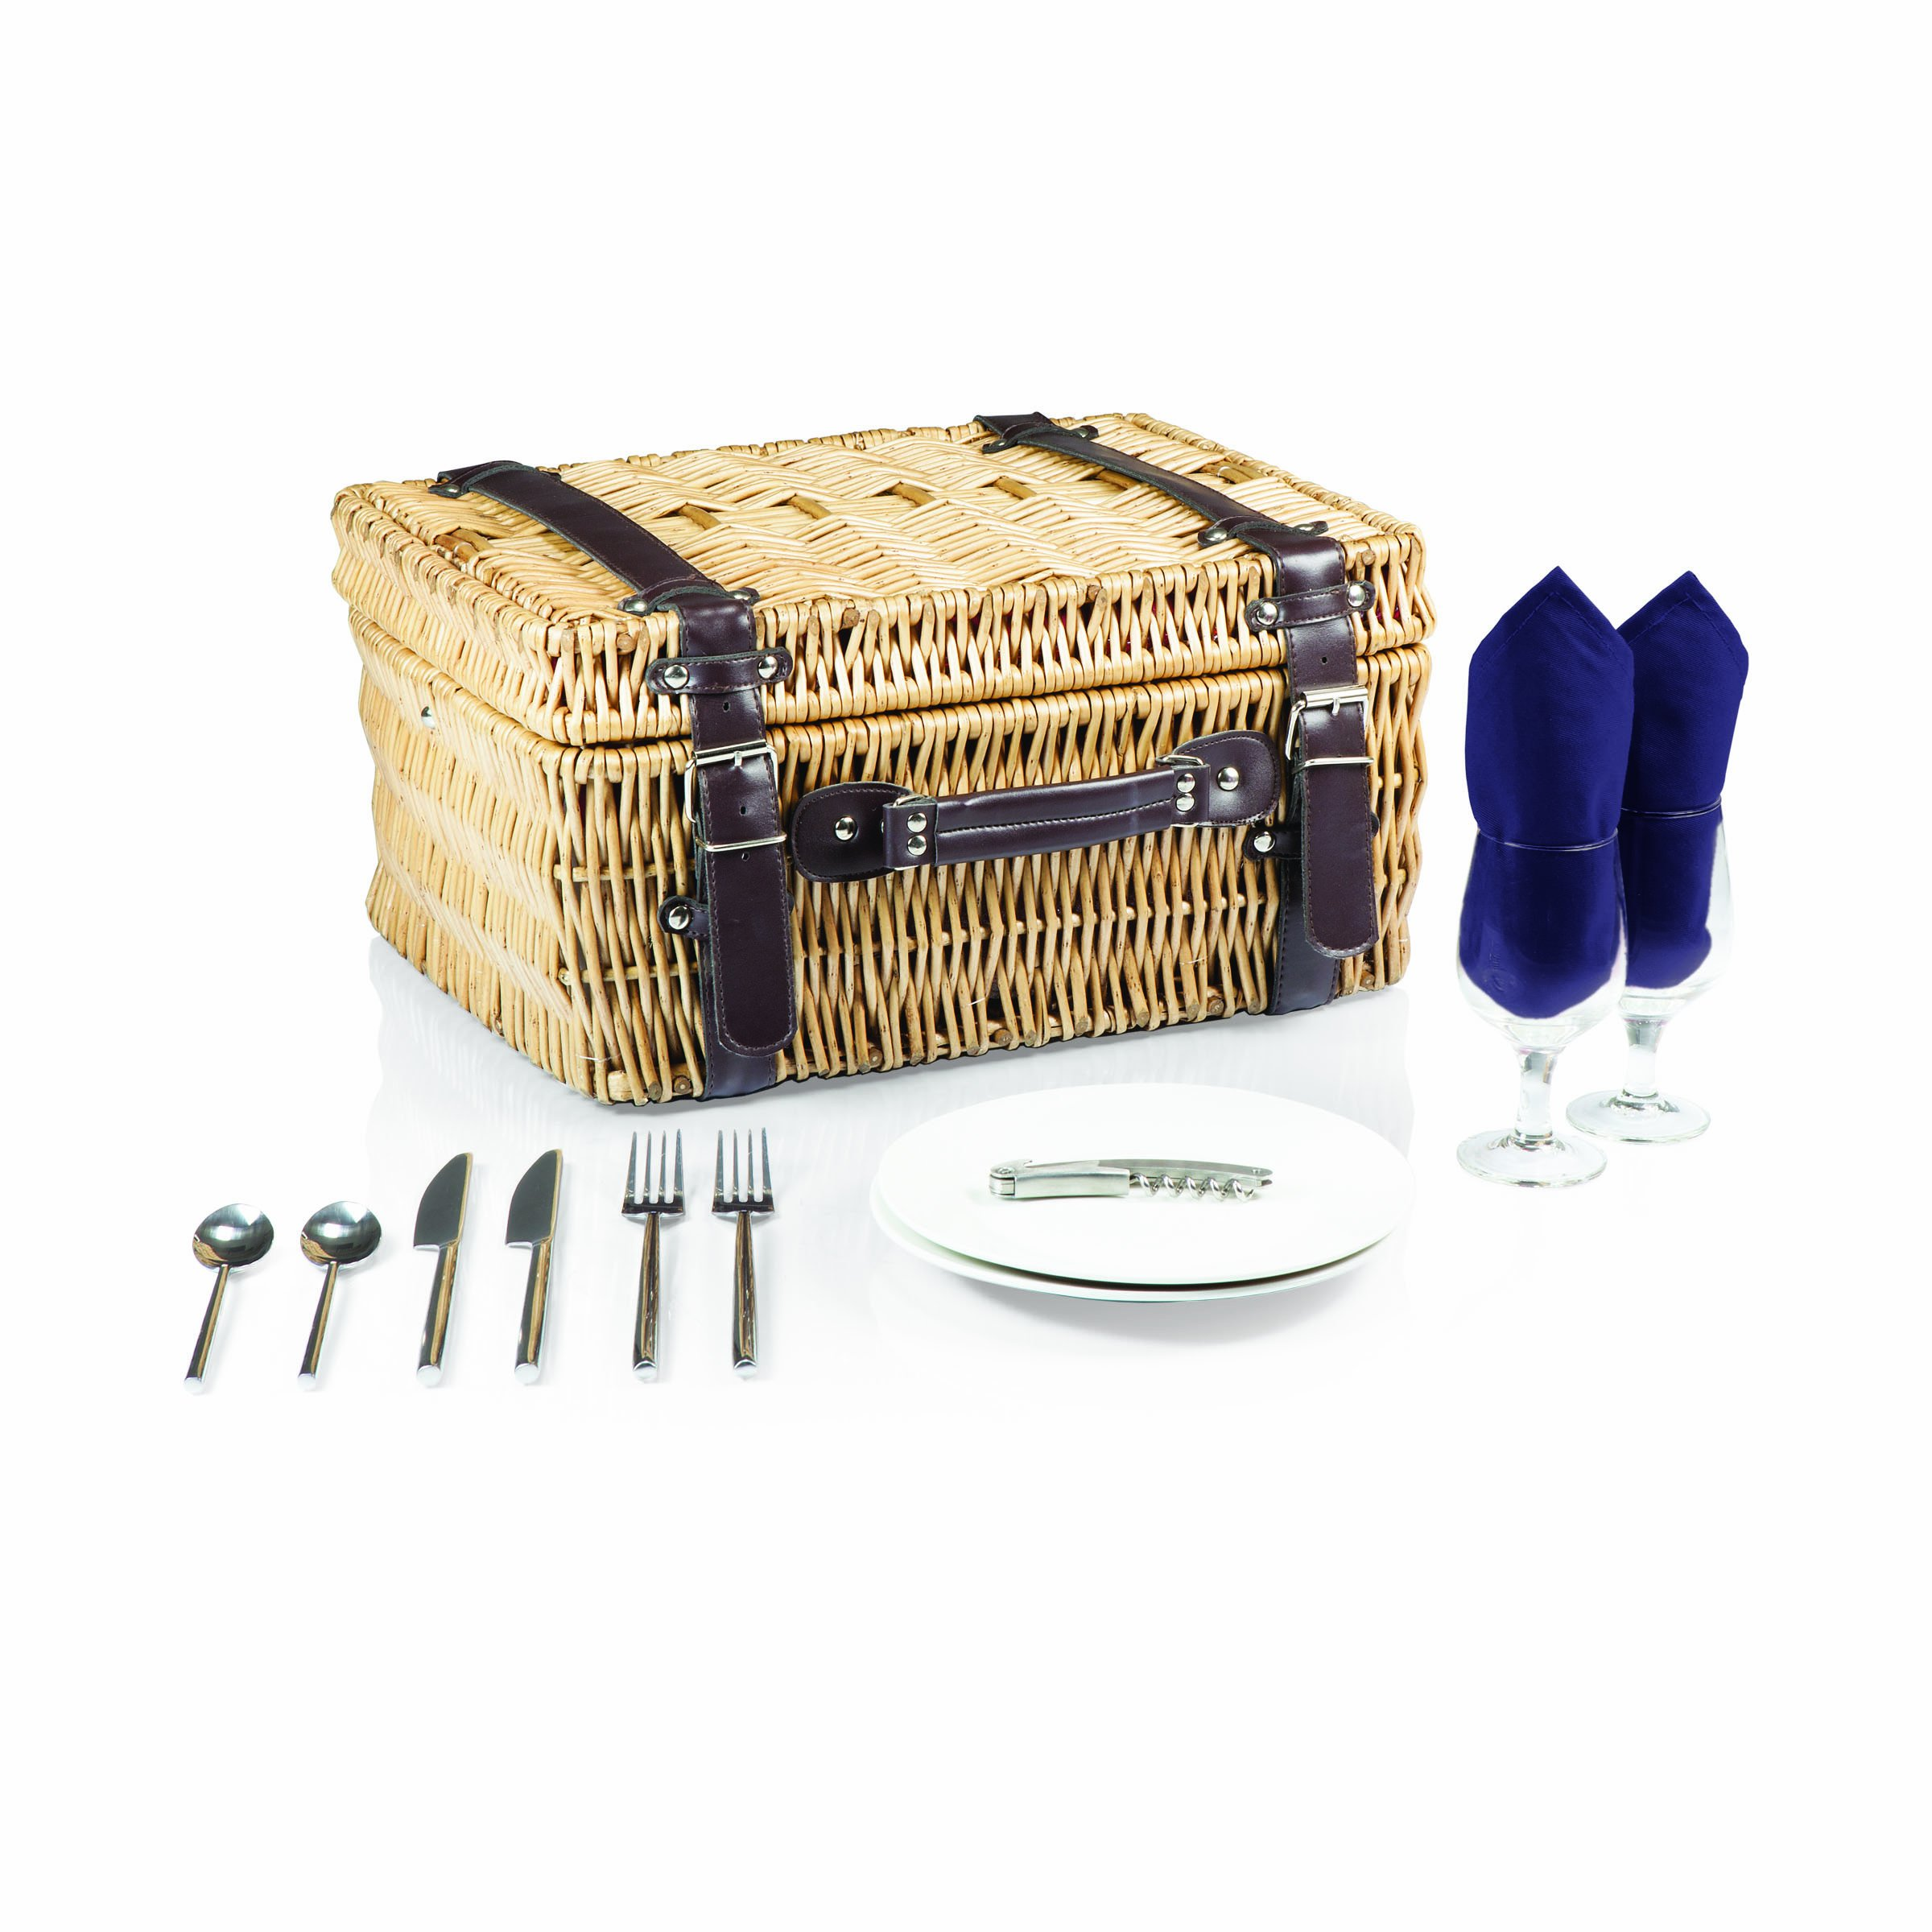 Picnic Time Champion Picnic Basket with Deluxe Service for 2, Navy